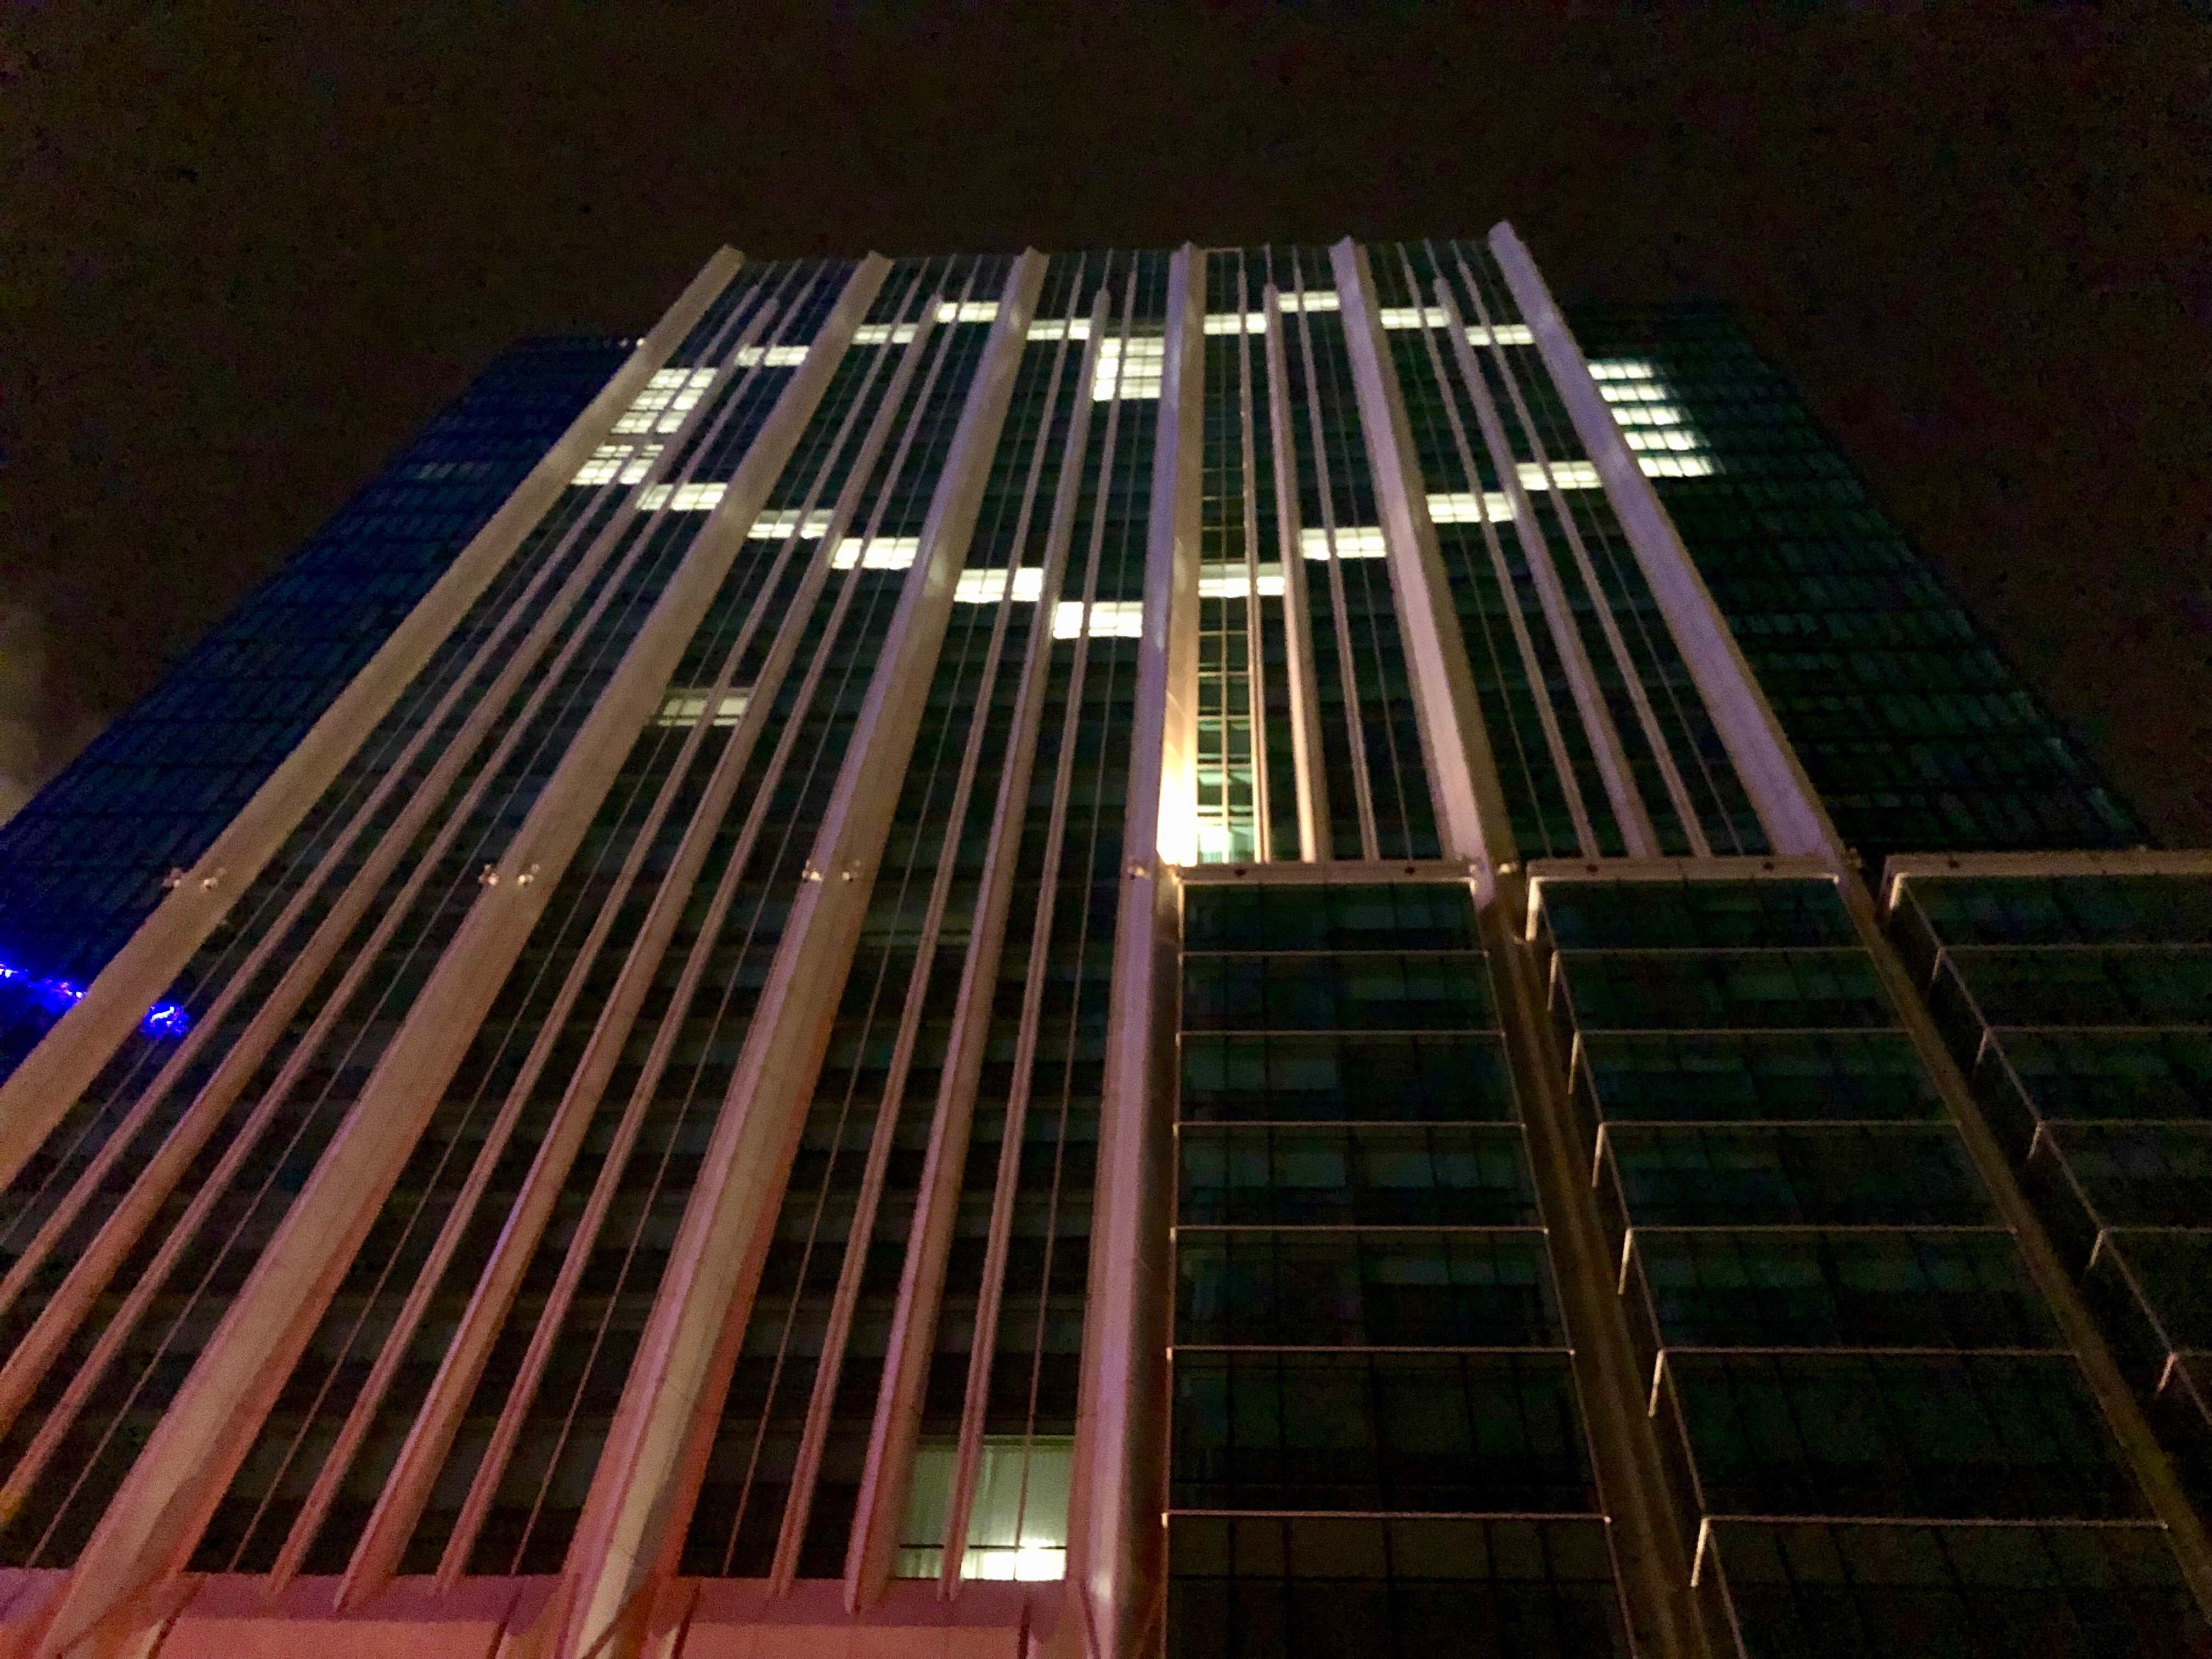 A tall building with its facade windows lit up in the shape of a heart.